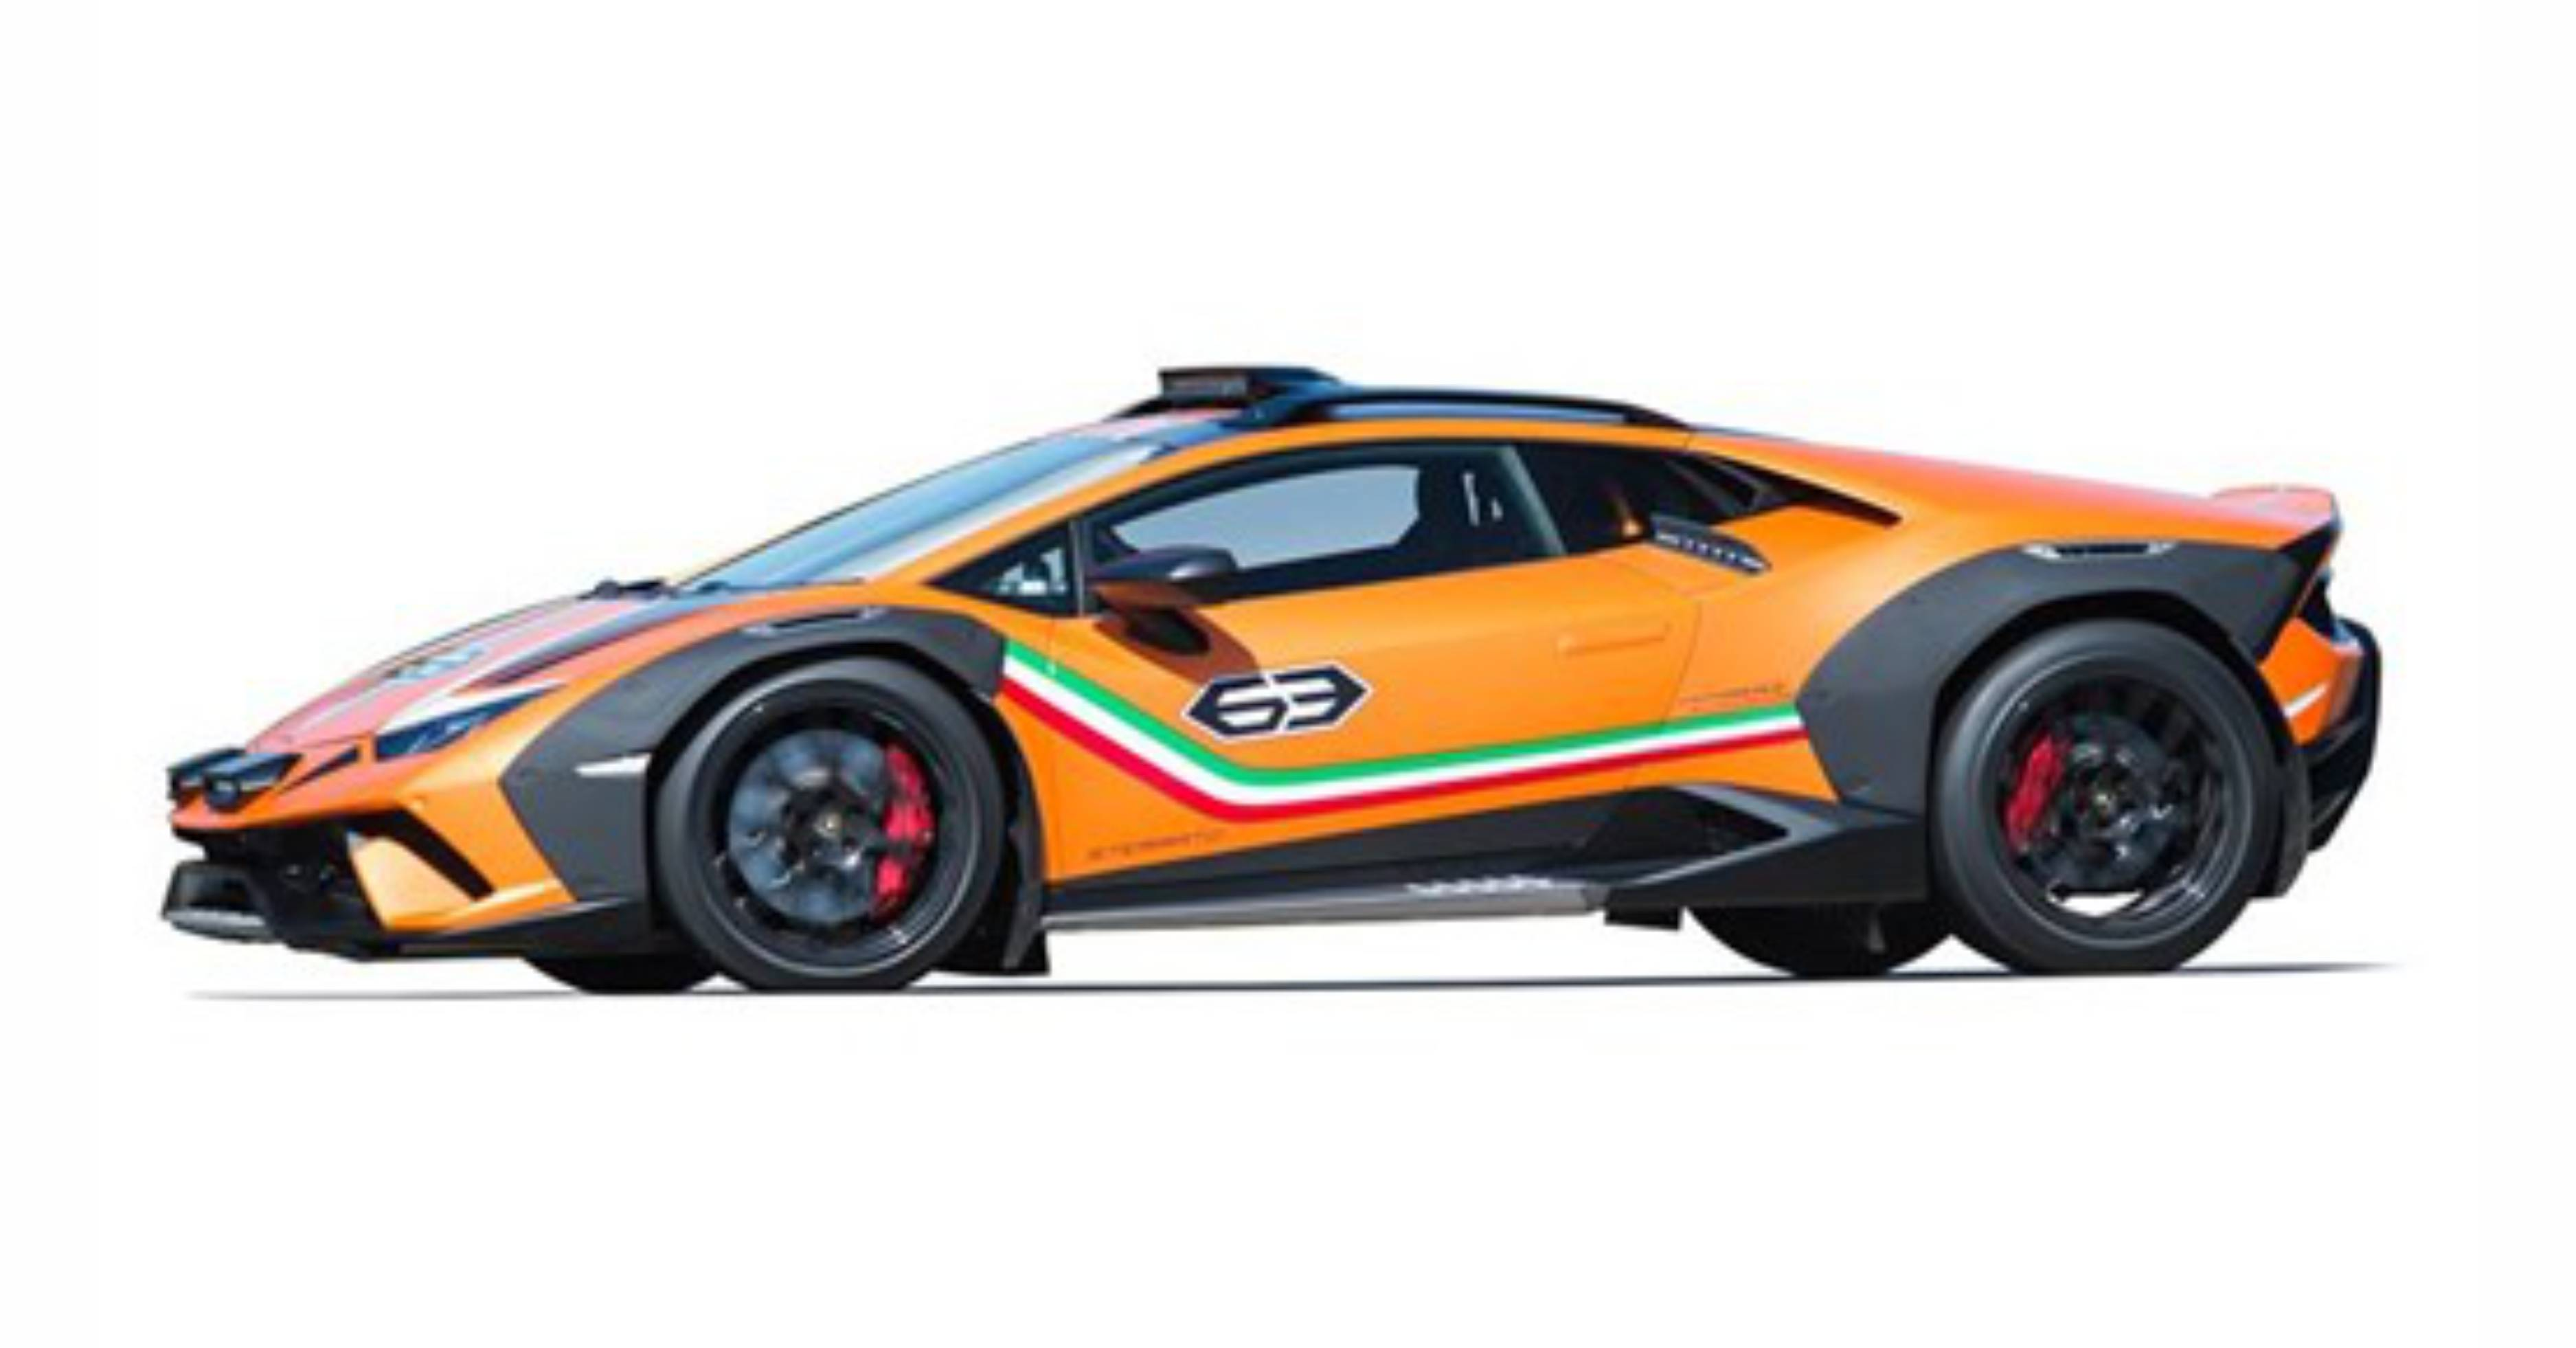 Lamborghini Getting Ready to Introduce Huracán Sterrato